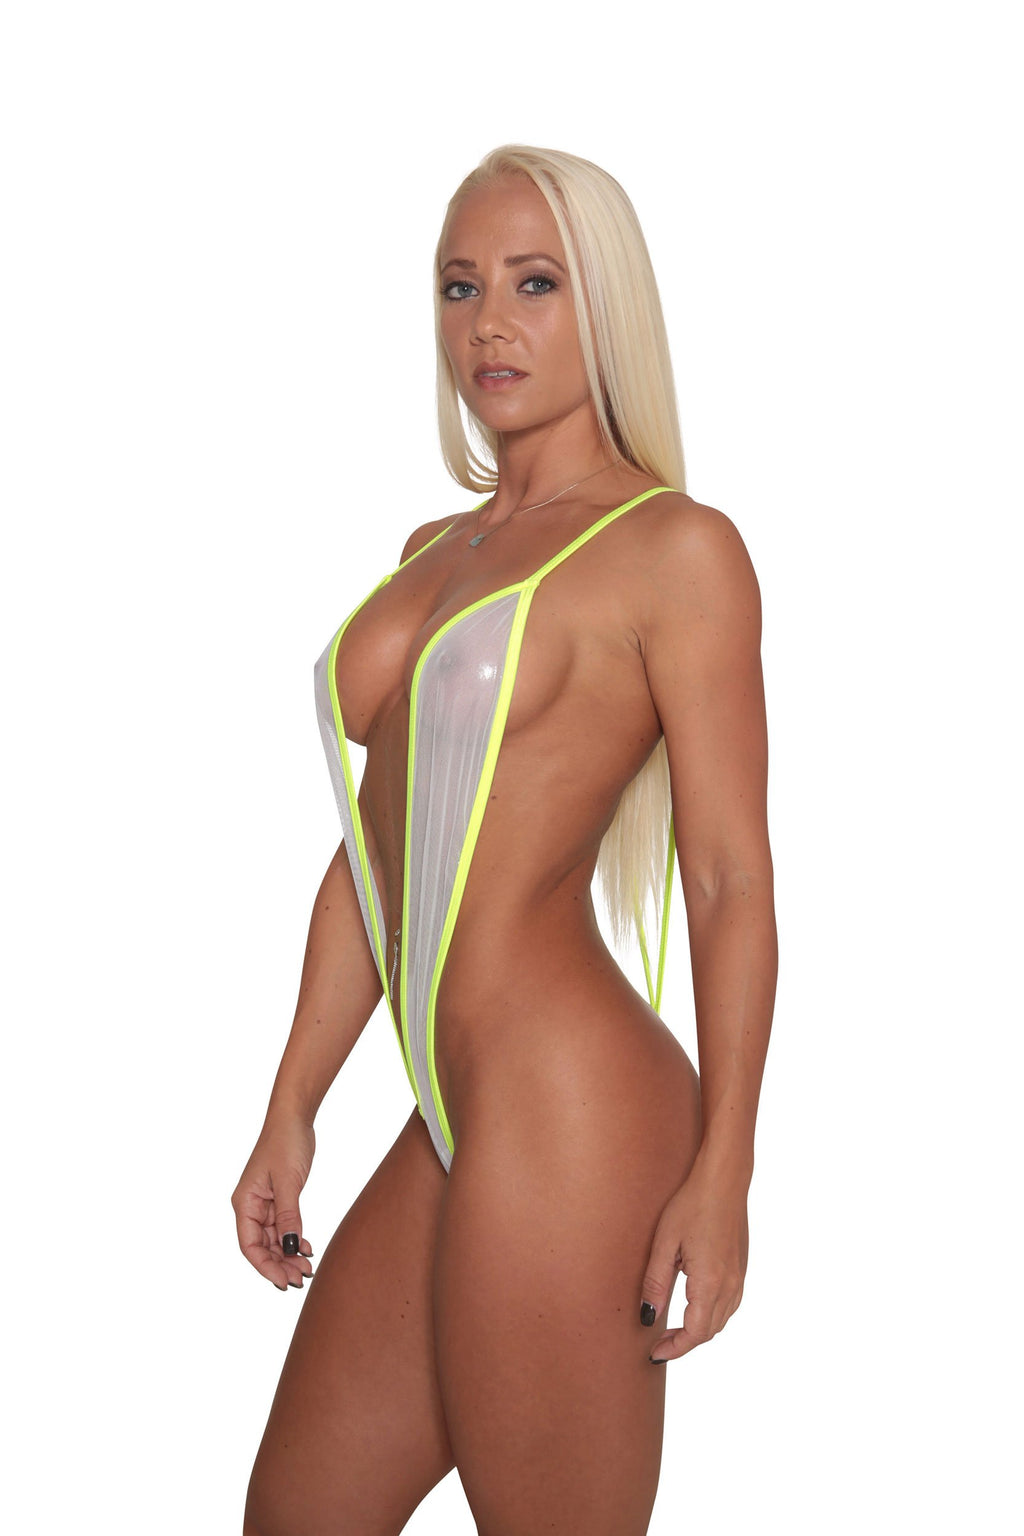 White Metallic Sheer Mesh Slingshot Stripper Clothing